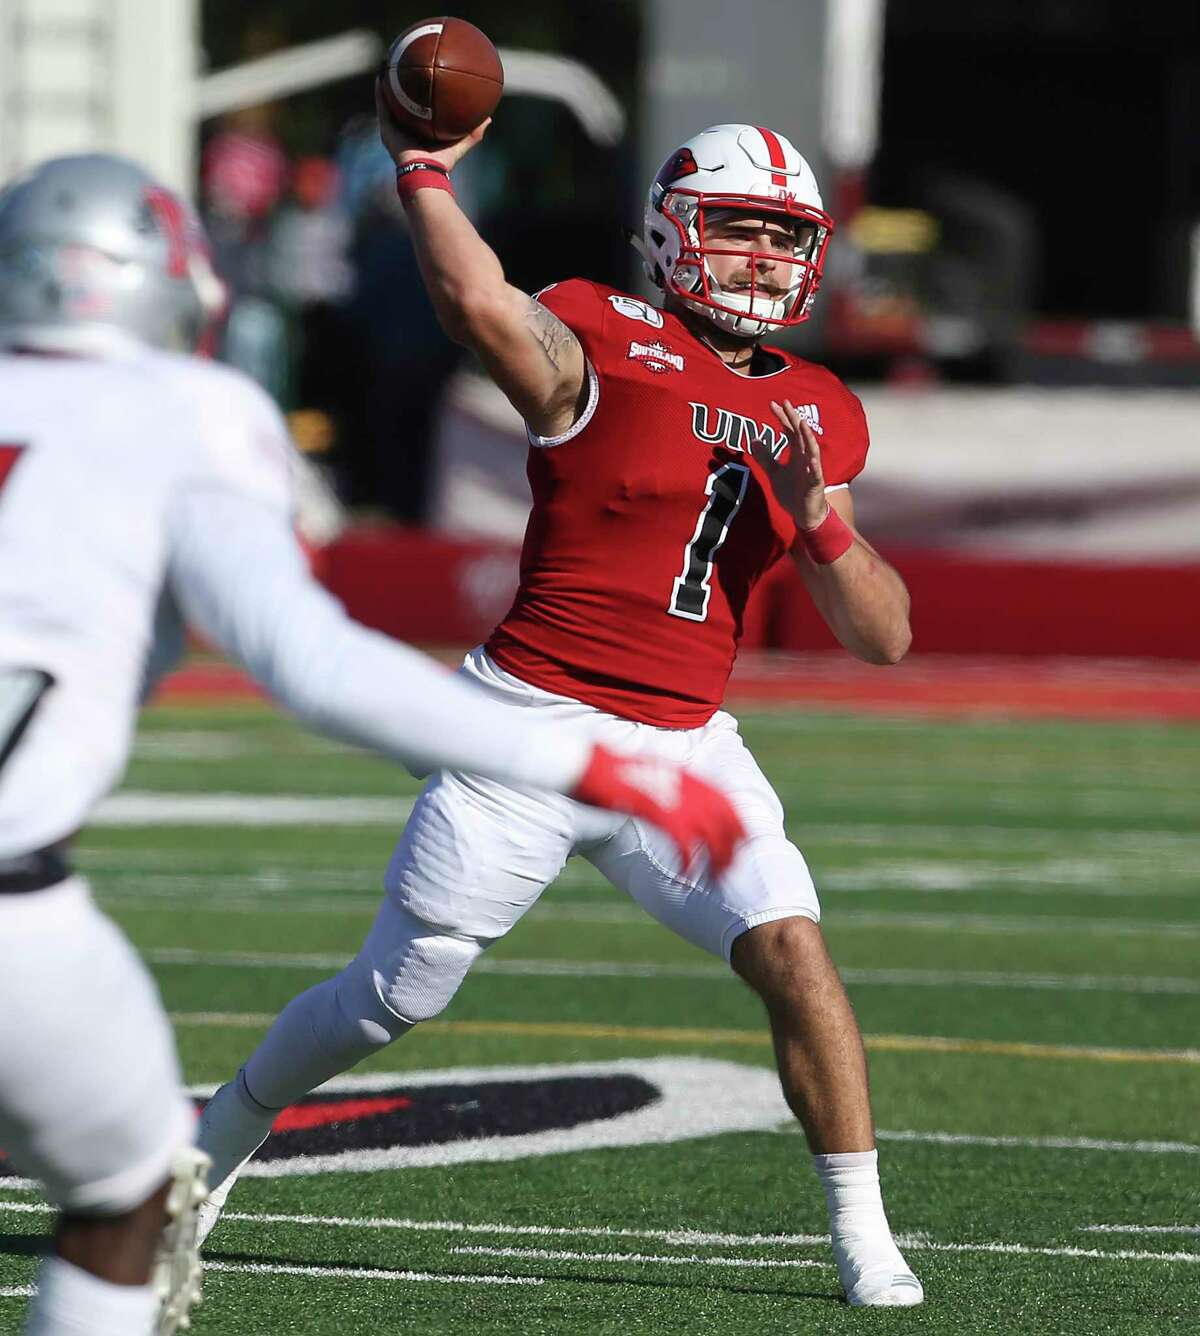 Jon Copeland picks a receiver for the Cardinals as UIW hosts Nicholls State at Benson Stadium on Nov.2, 2019.